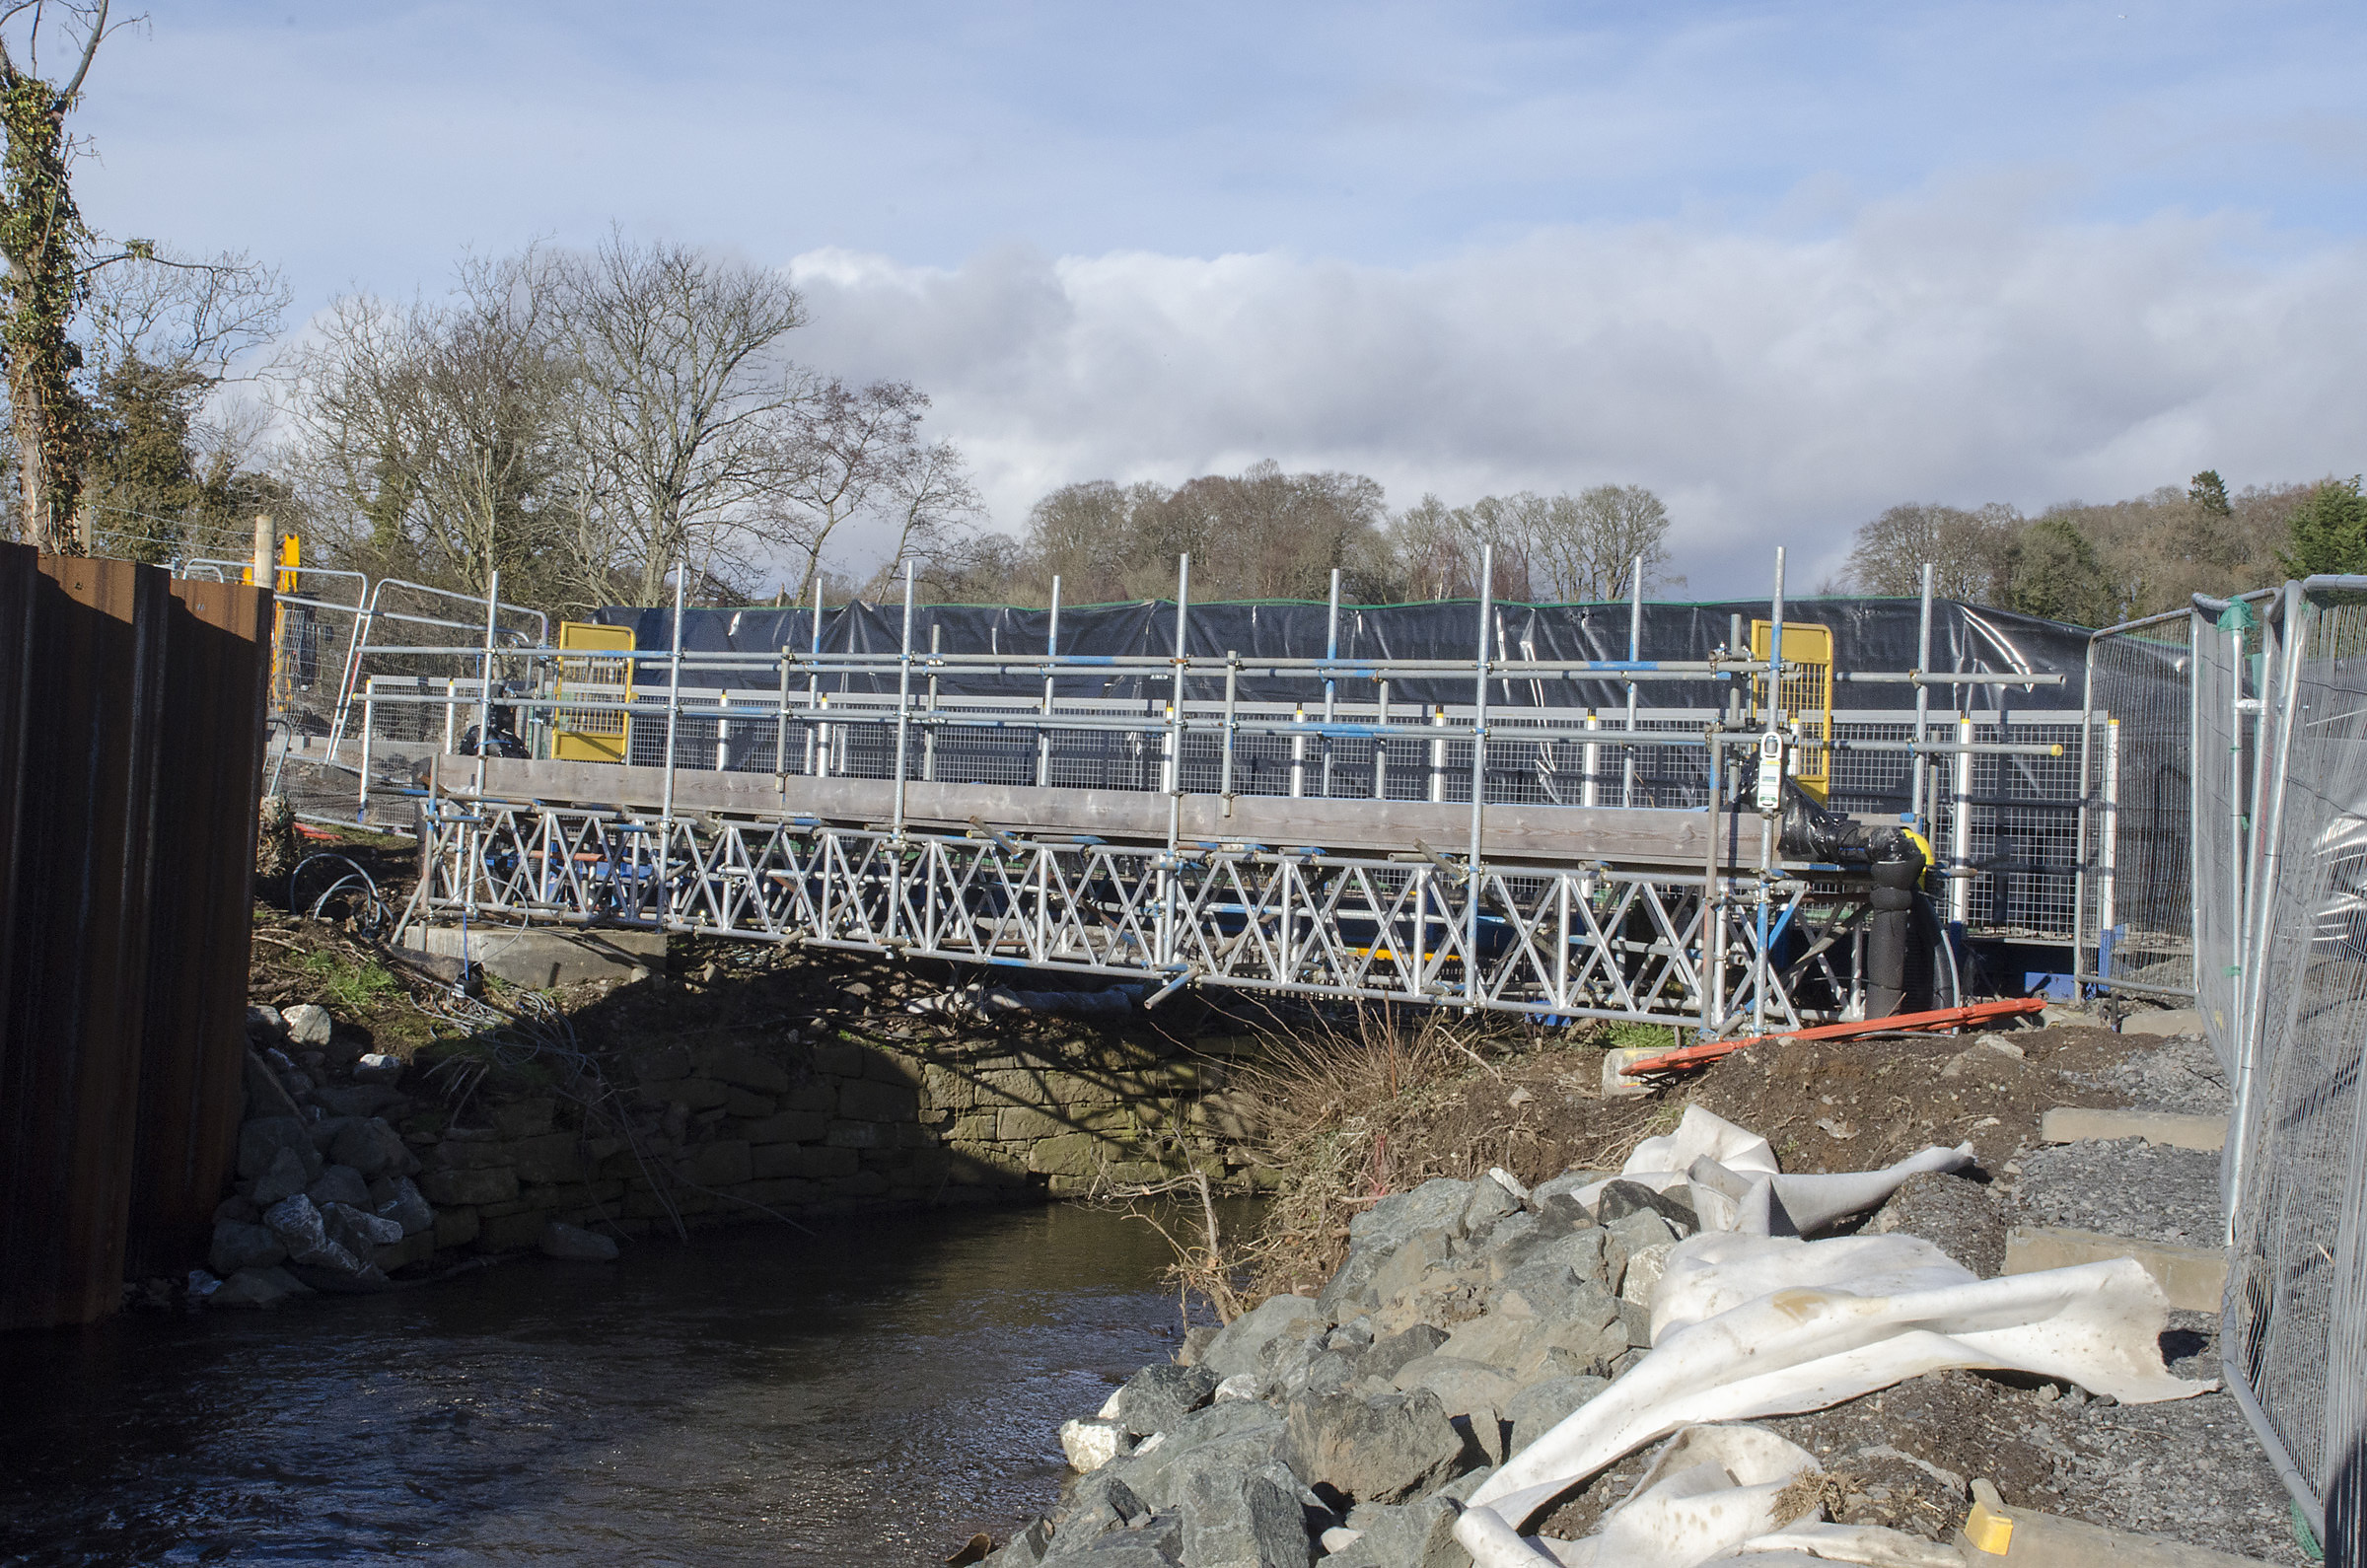 The River Almond bridge has needed to be rebuilt as part of the development.